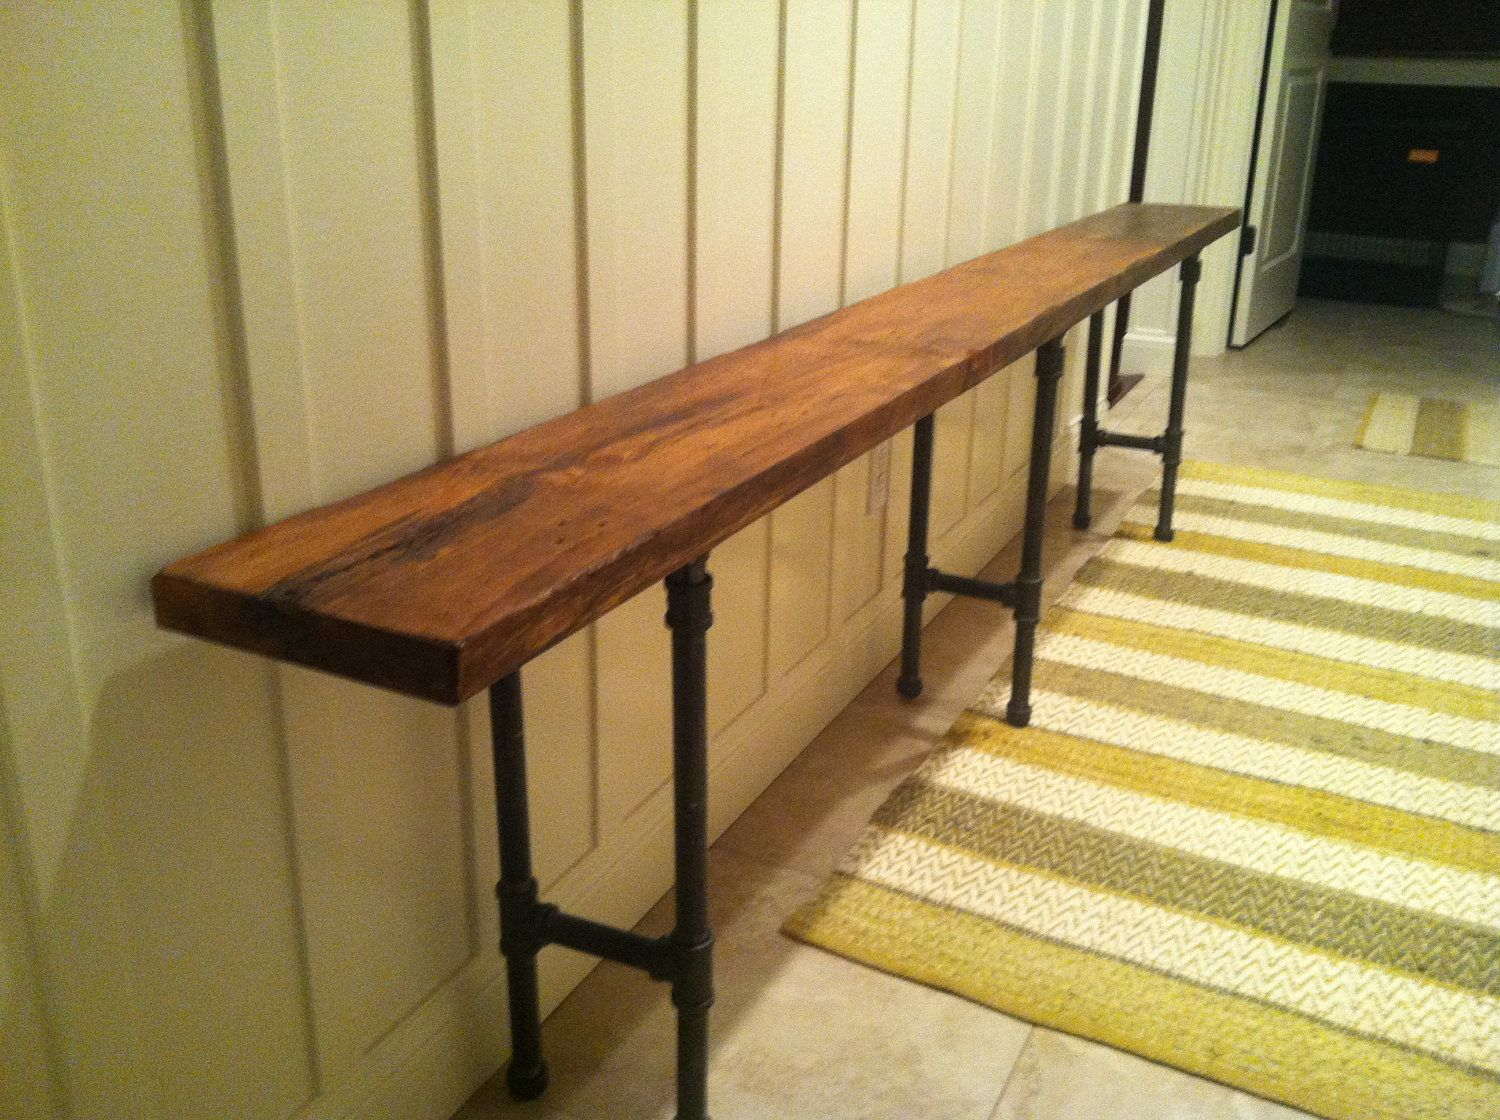 Black Iron Pipe Reclaimed Wood Bench 300 00 Via Etsy I